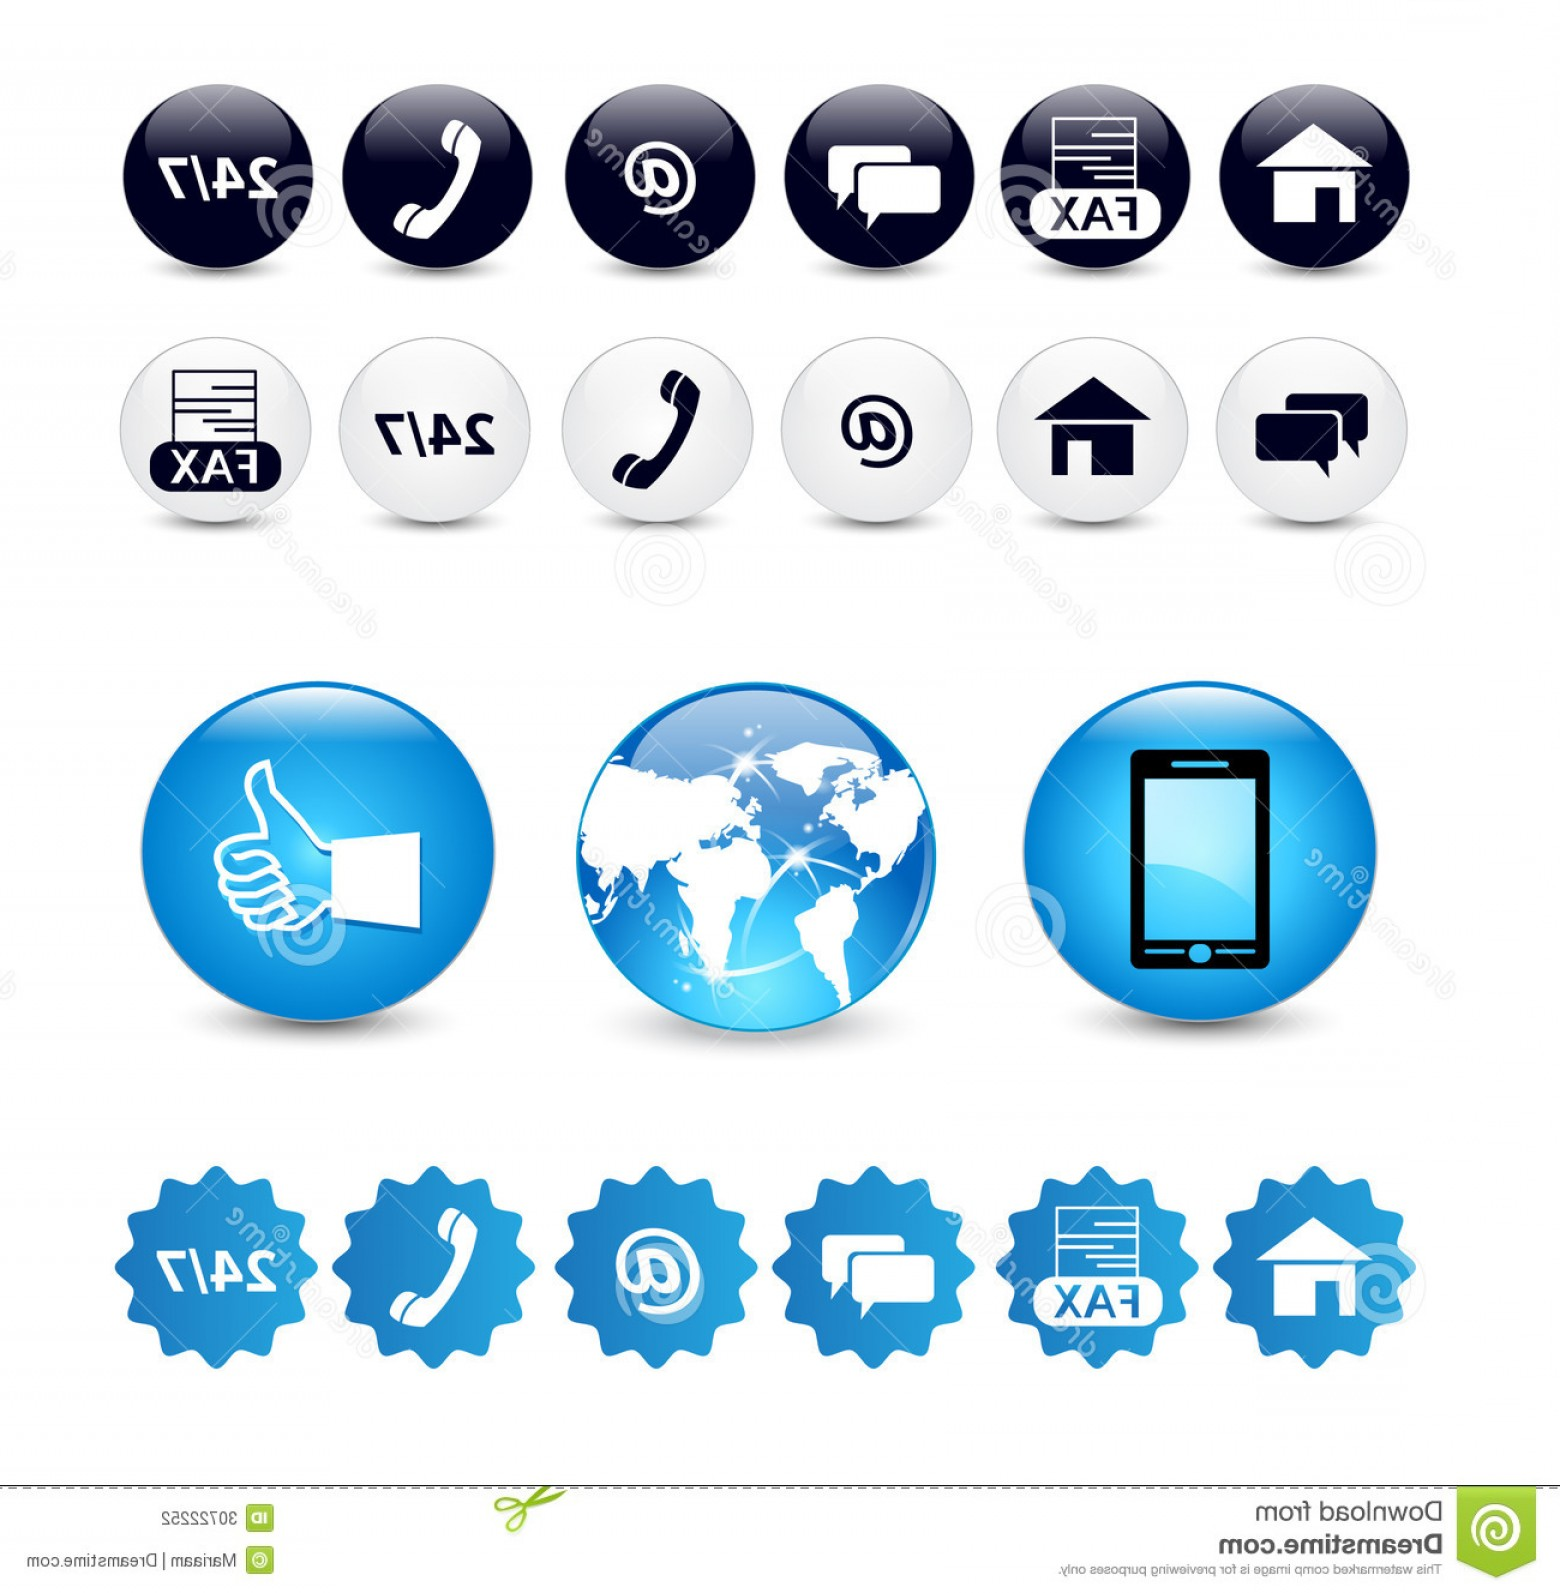 Contact Button Icons Vector Free: Stock Illustration Web Contact Us Buttons Set Email Telephone Mobile Icons Blue Silver Badge Vector Eps Illustration White Image